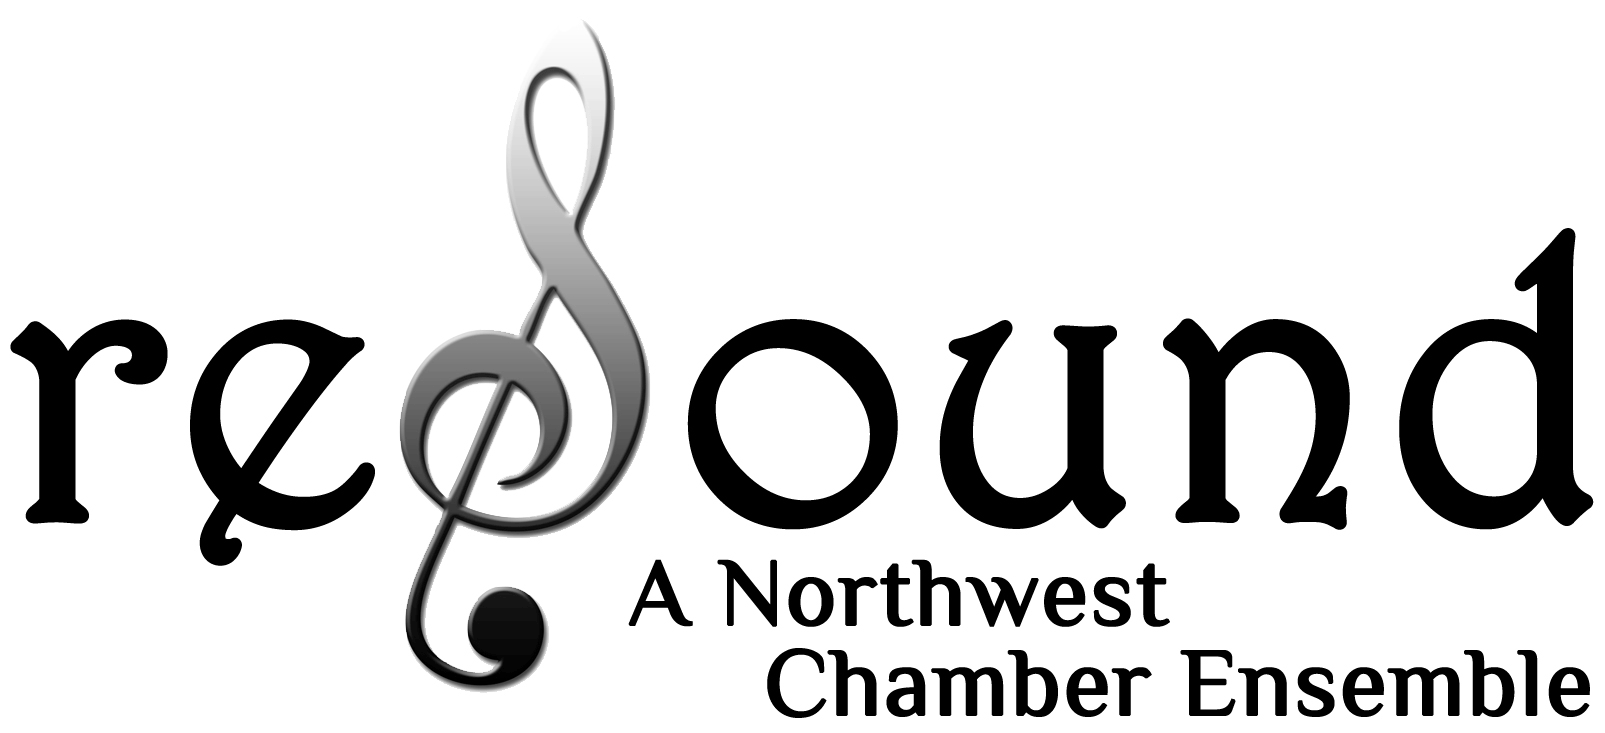 reSound, a Northwest Chamber Ensemble